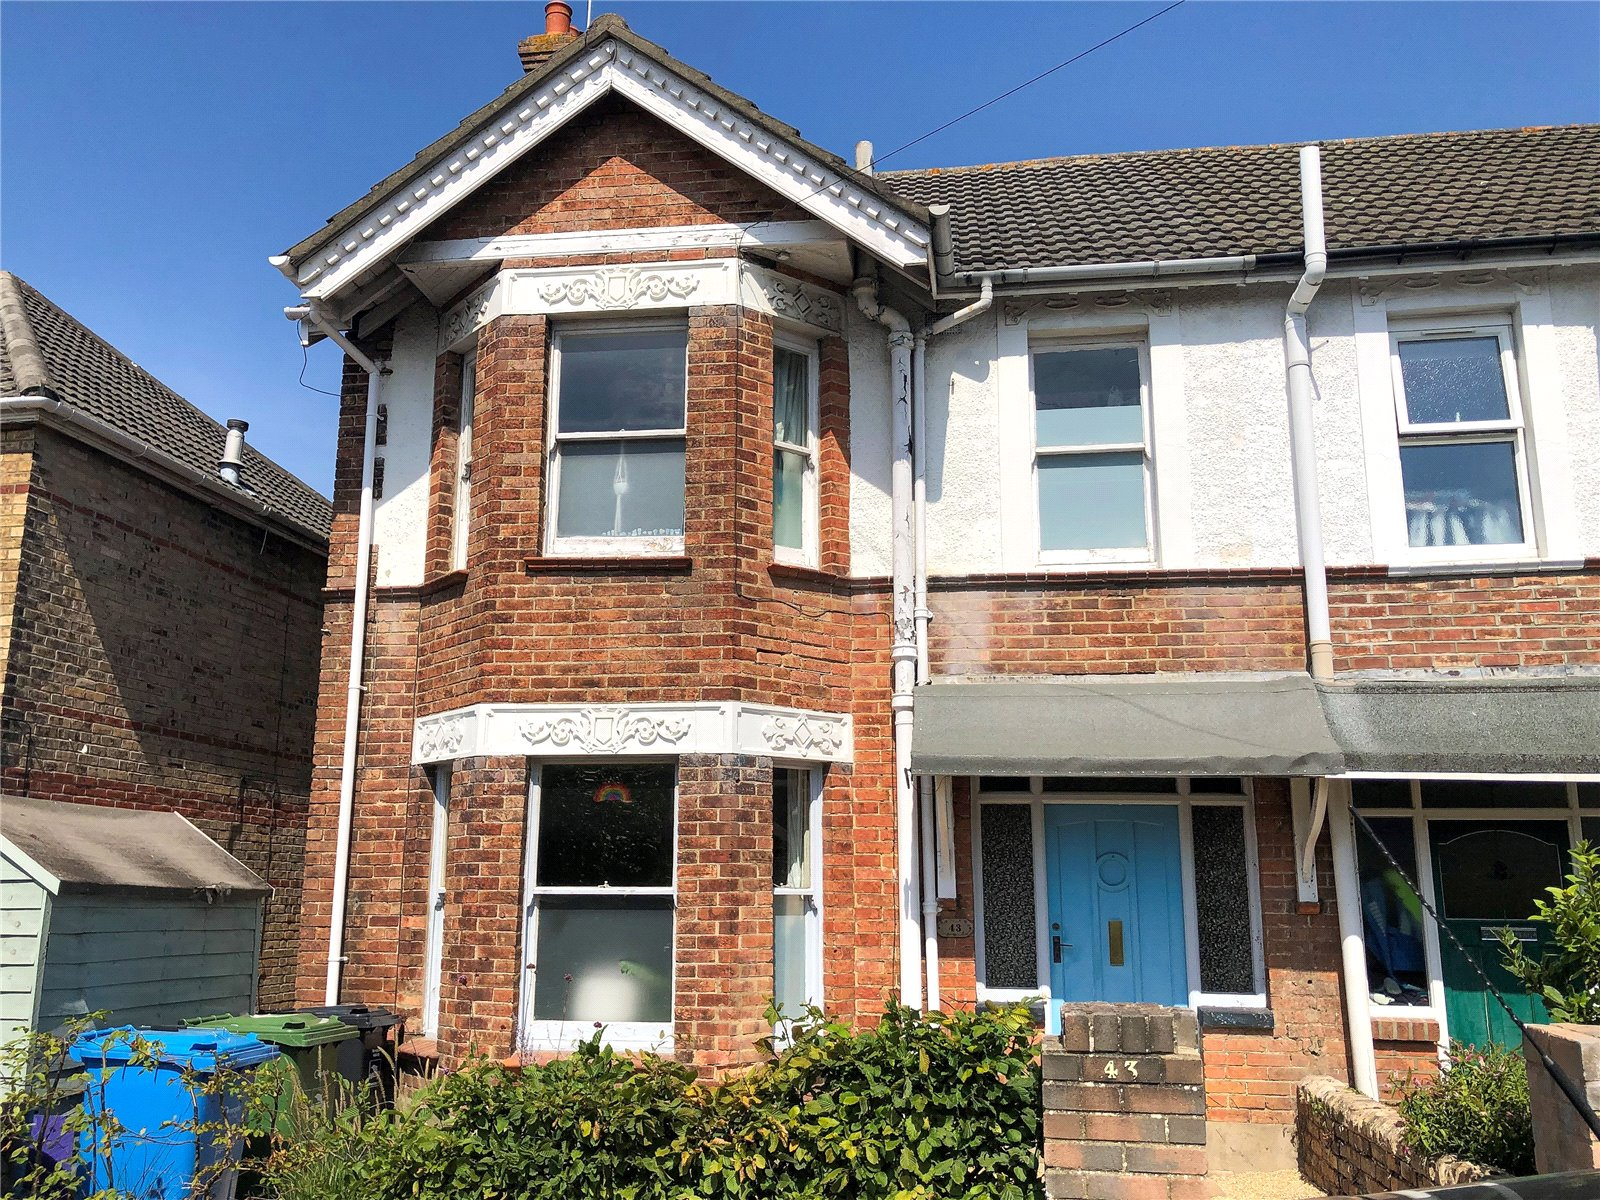 3 bed house for sale in North Road, Lower Parkstone - Property Image 1